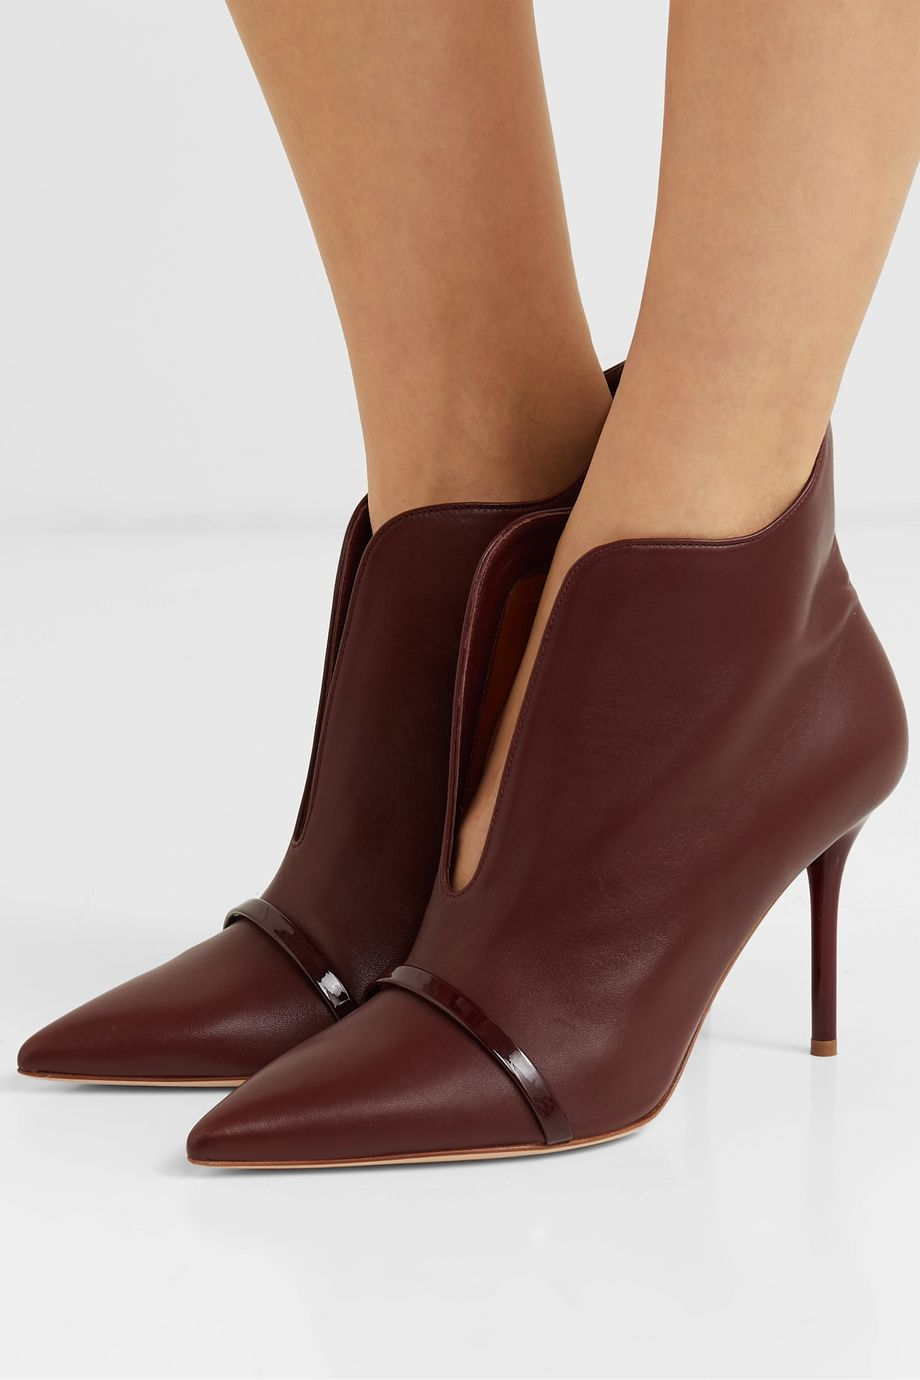 Malone Souliers Cora 85 leather ankle boots